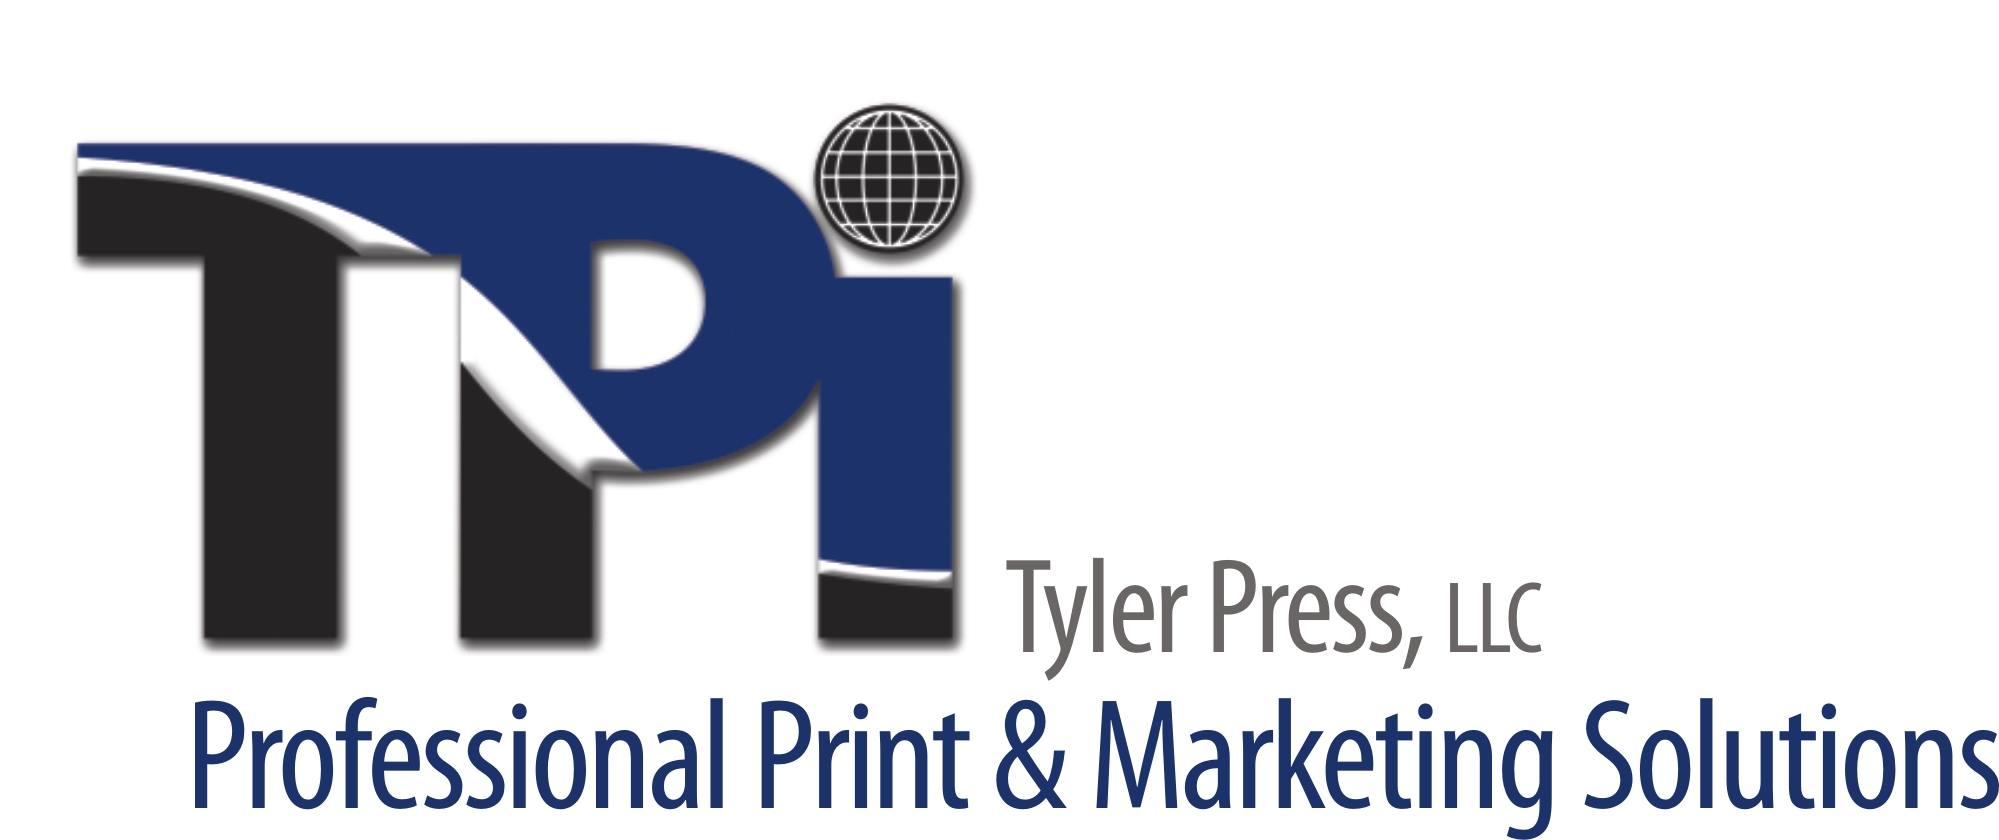 TPi Professional Print & Marketing Solutions